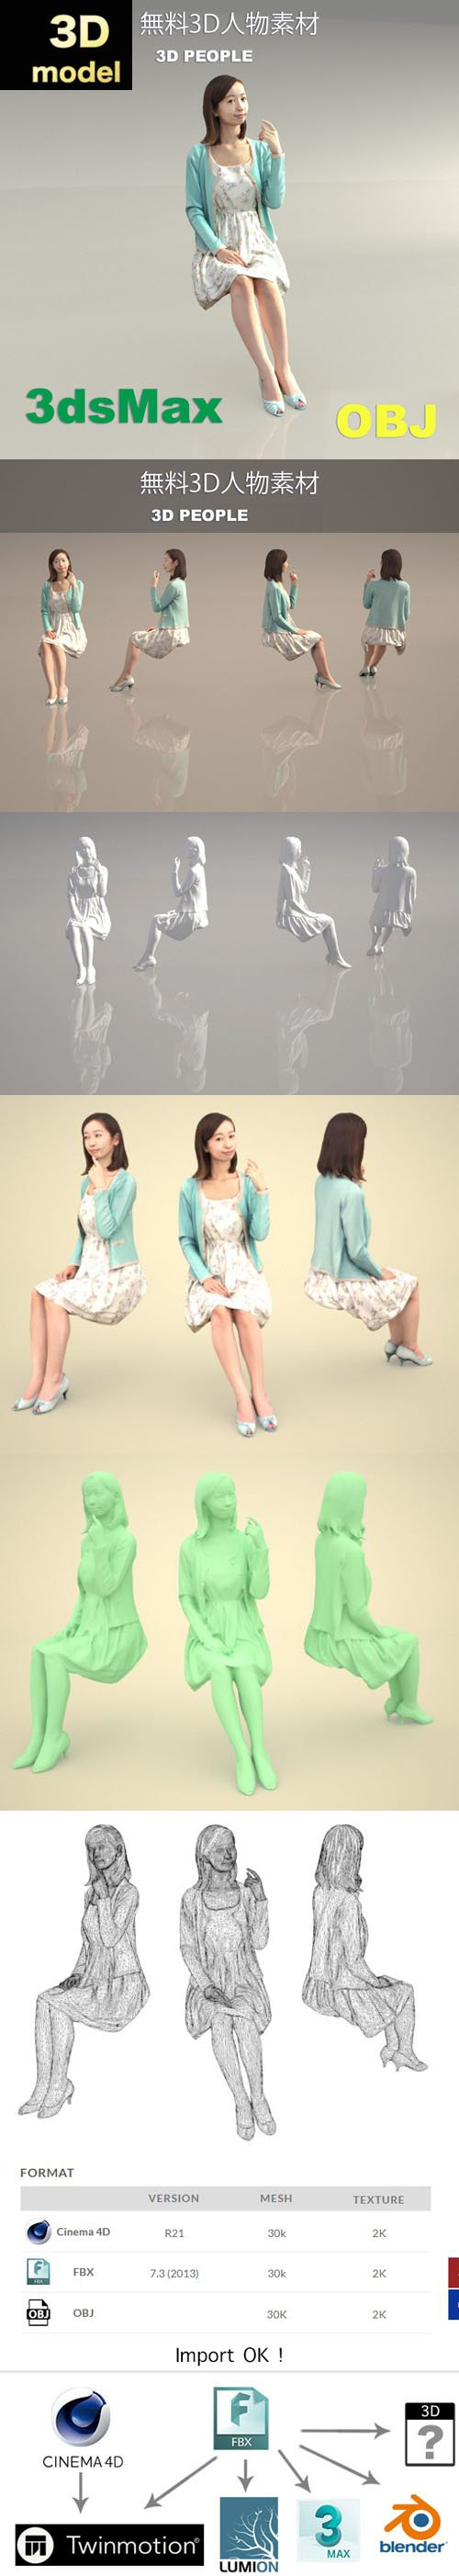 3D Portrait Model - Ideal for Architectural Visualization